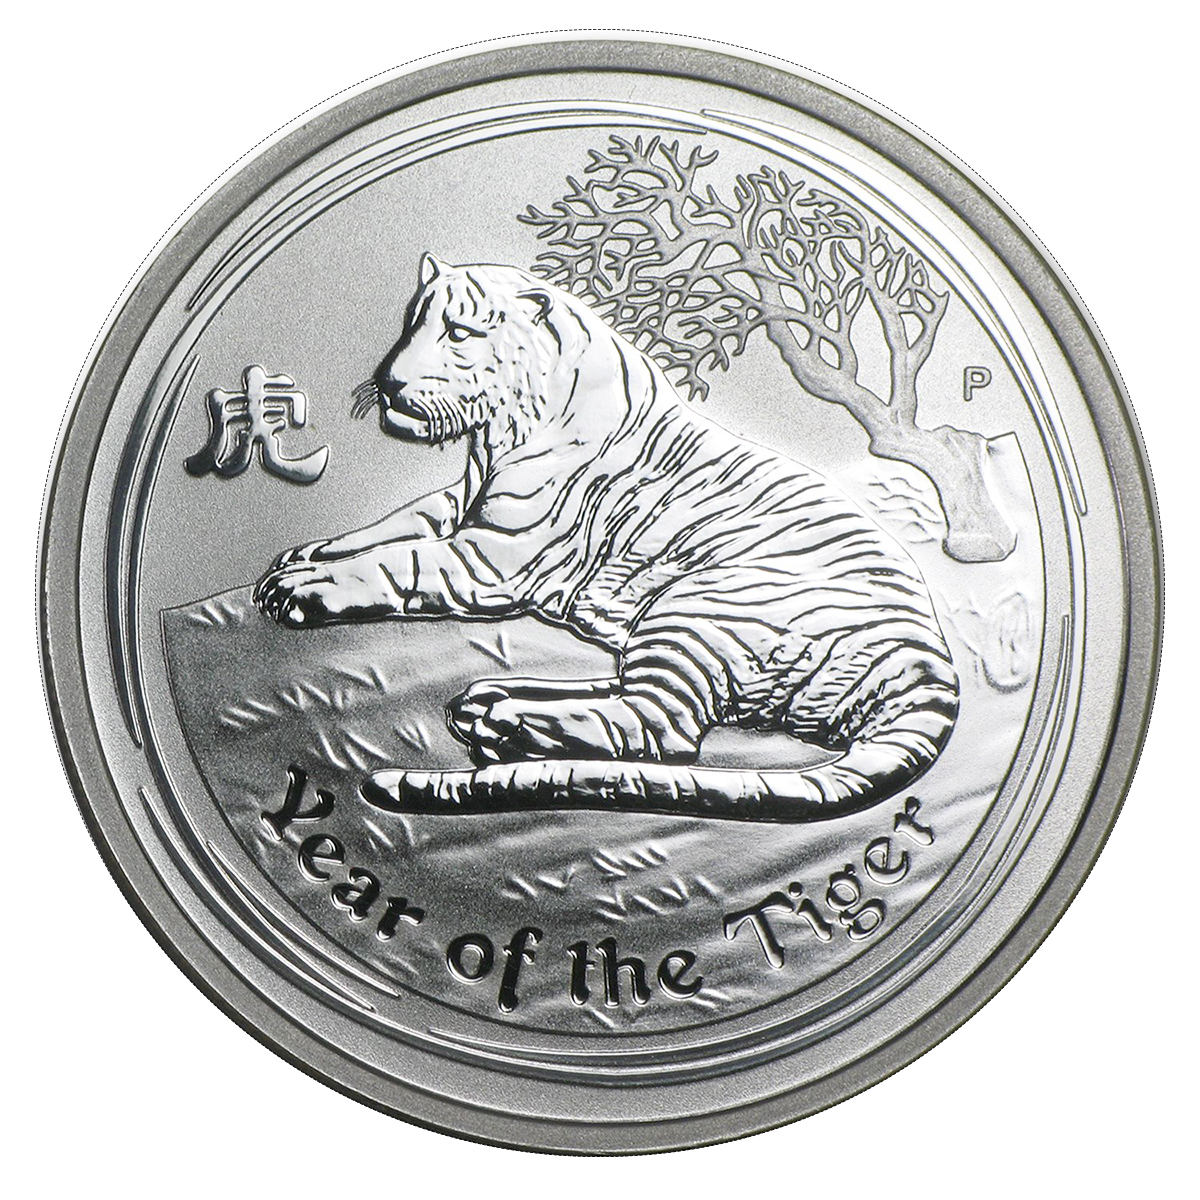 2010 Lunar Tiger 1 oz Silver Coin Series II from Perth Mint in Australia